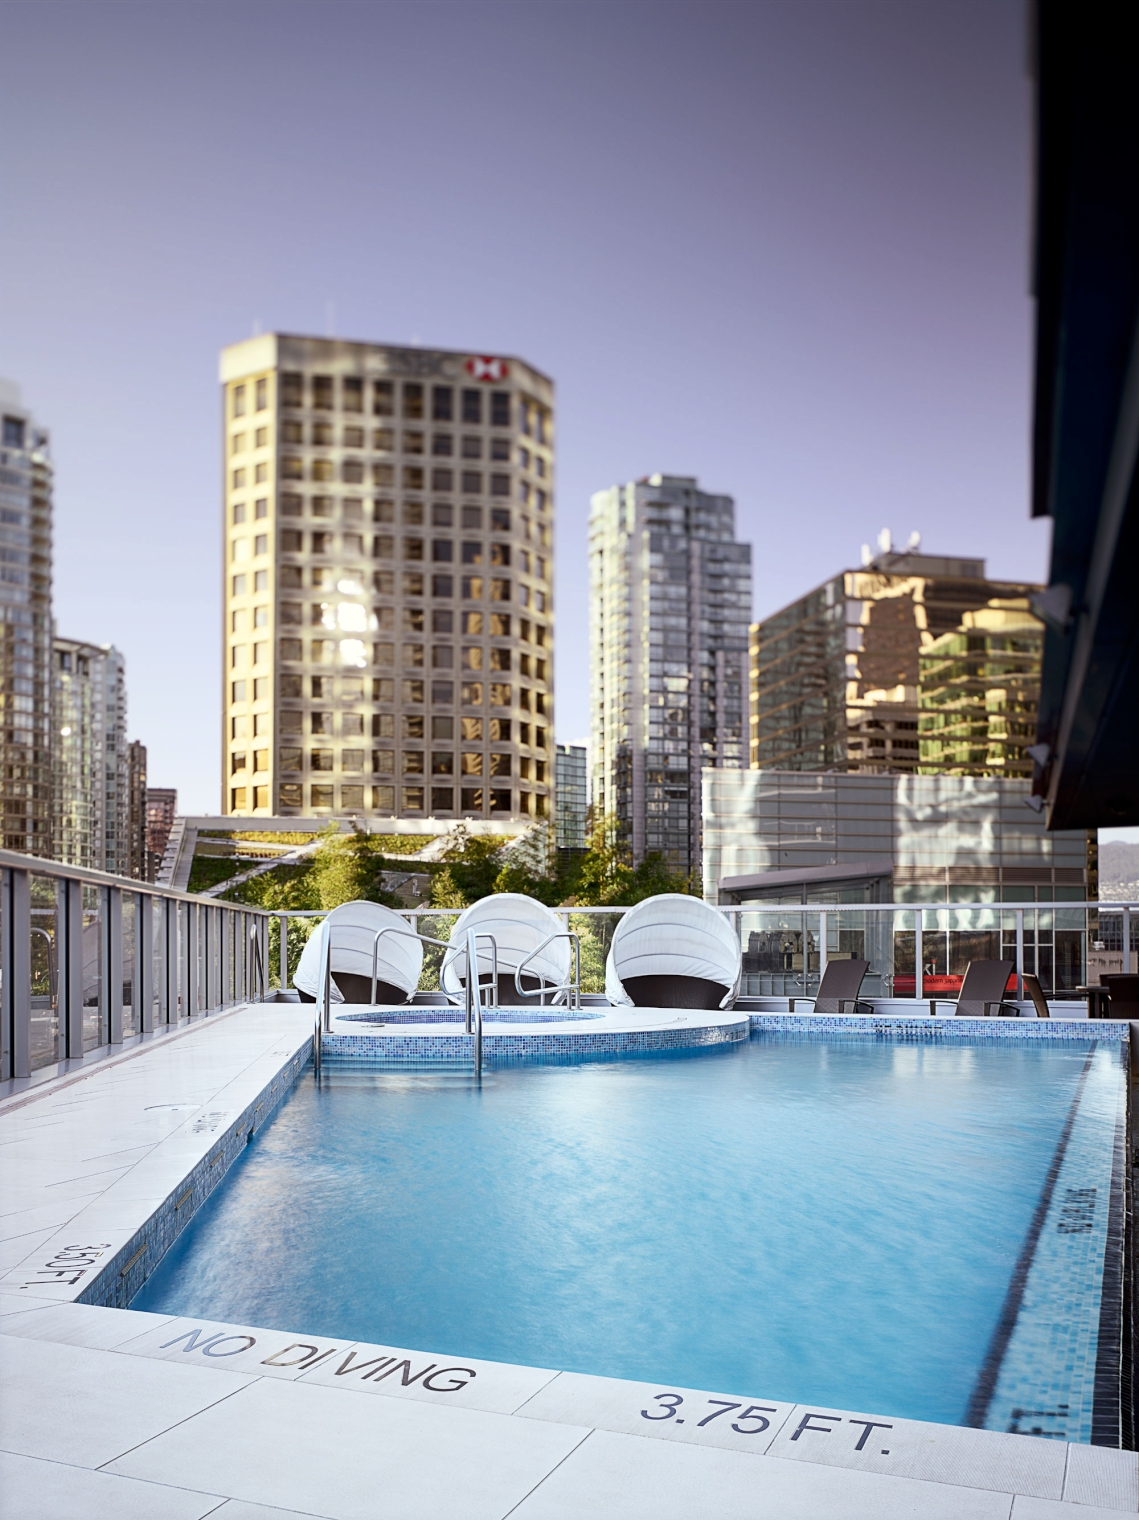 The Deluxe Hotel Vancouver Reviews